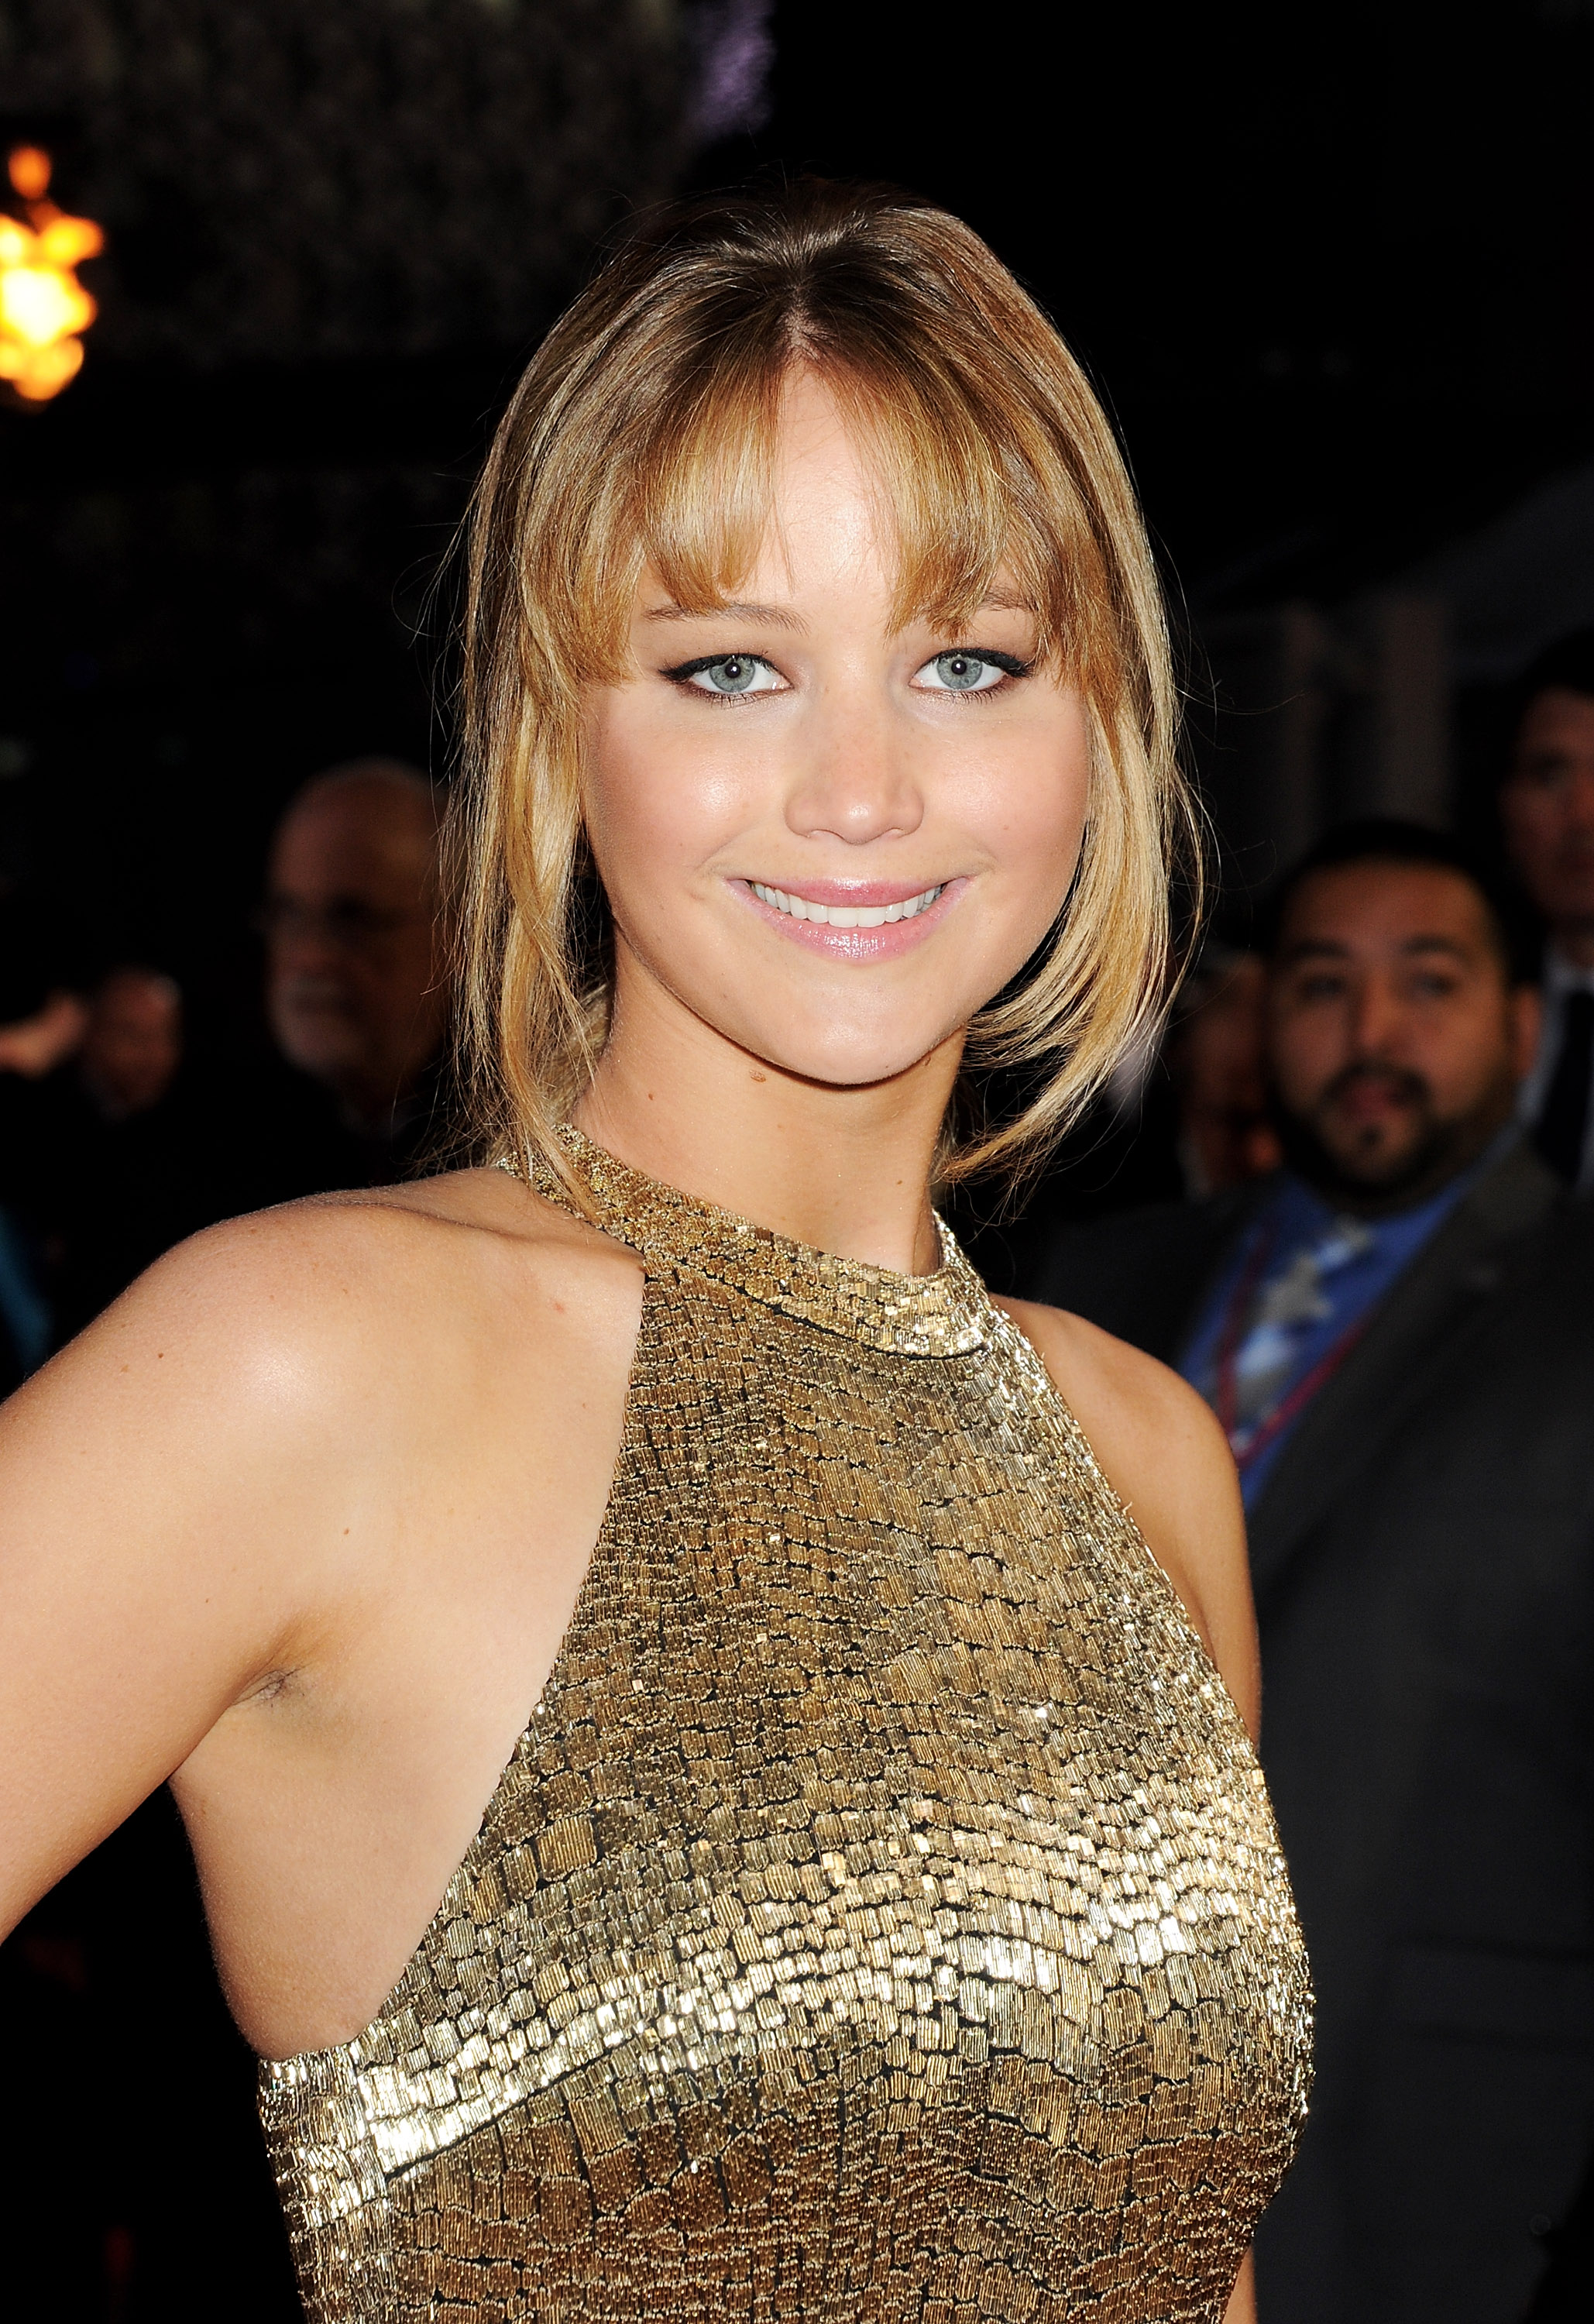 Jennifer opted for a more neutral makeup palette this time with nude lips, a stroke of black eyeliner, and a tousled updo.